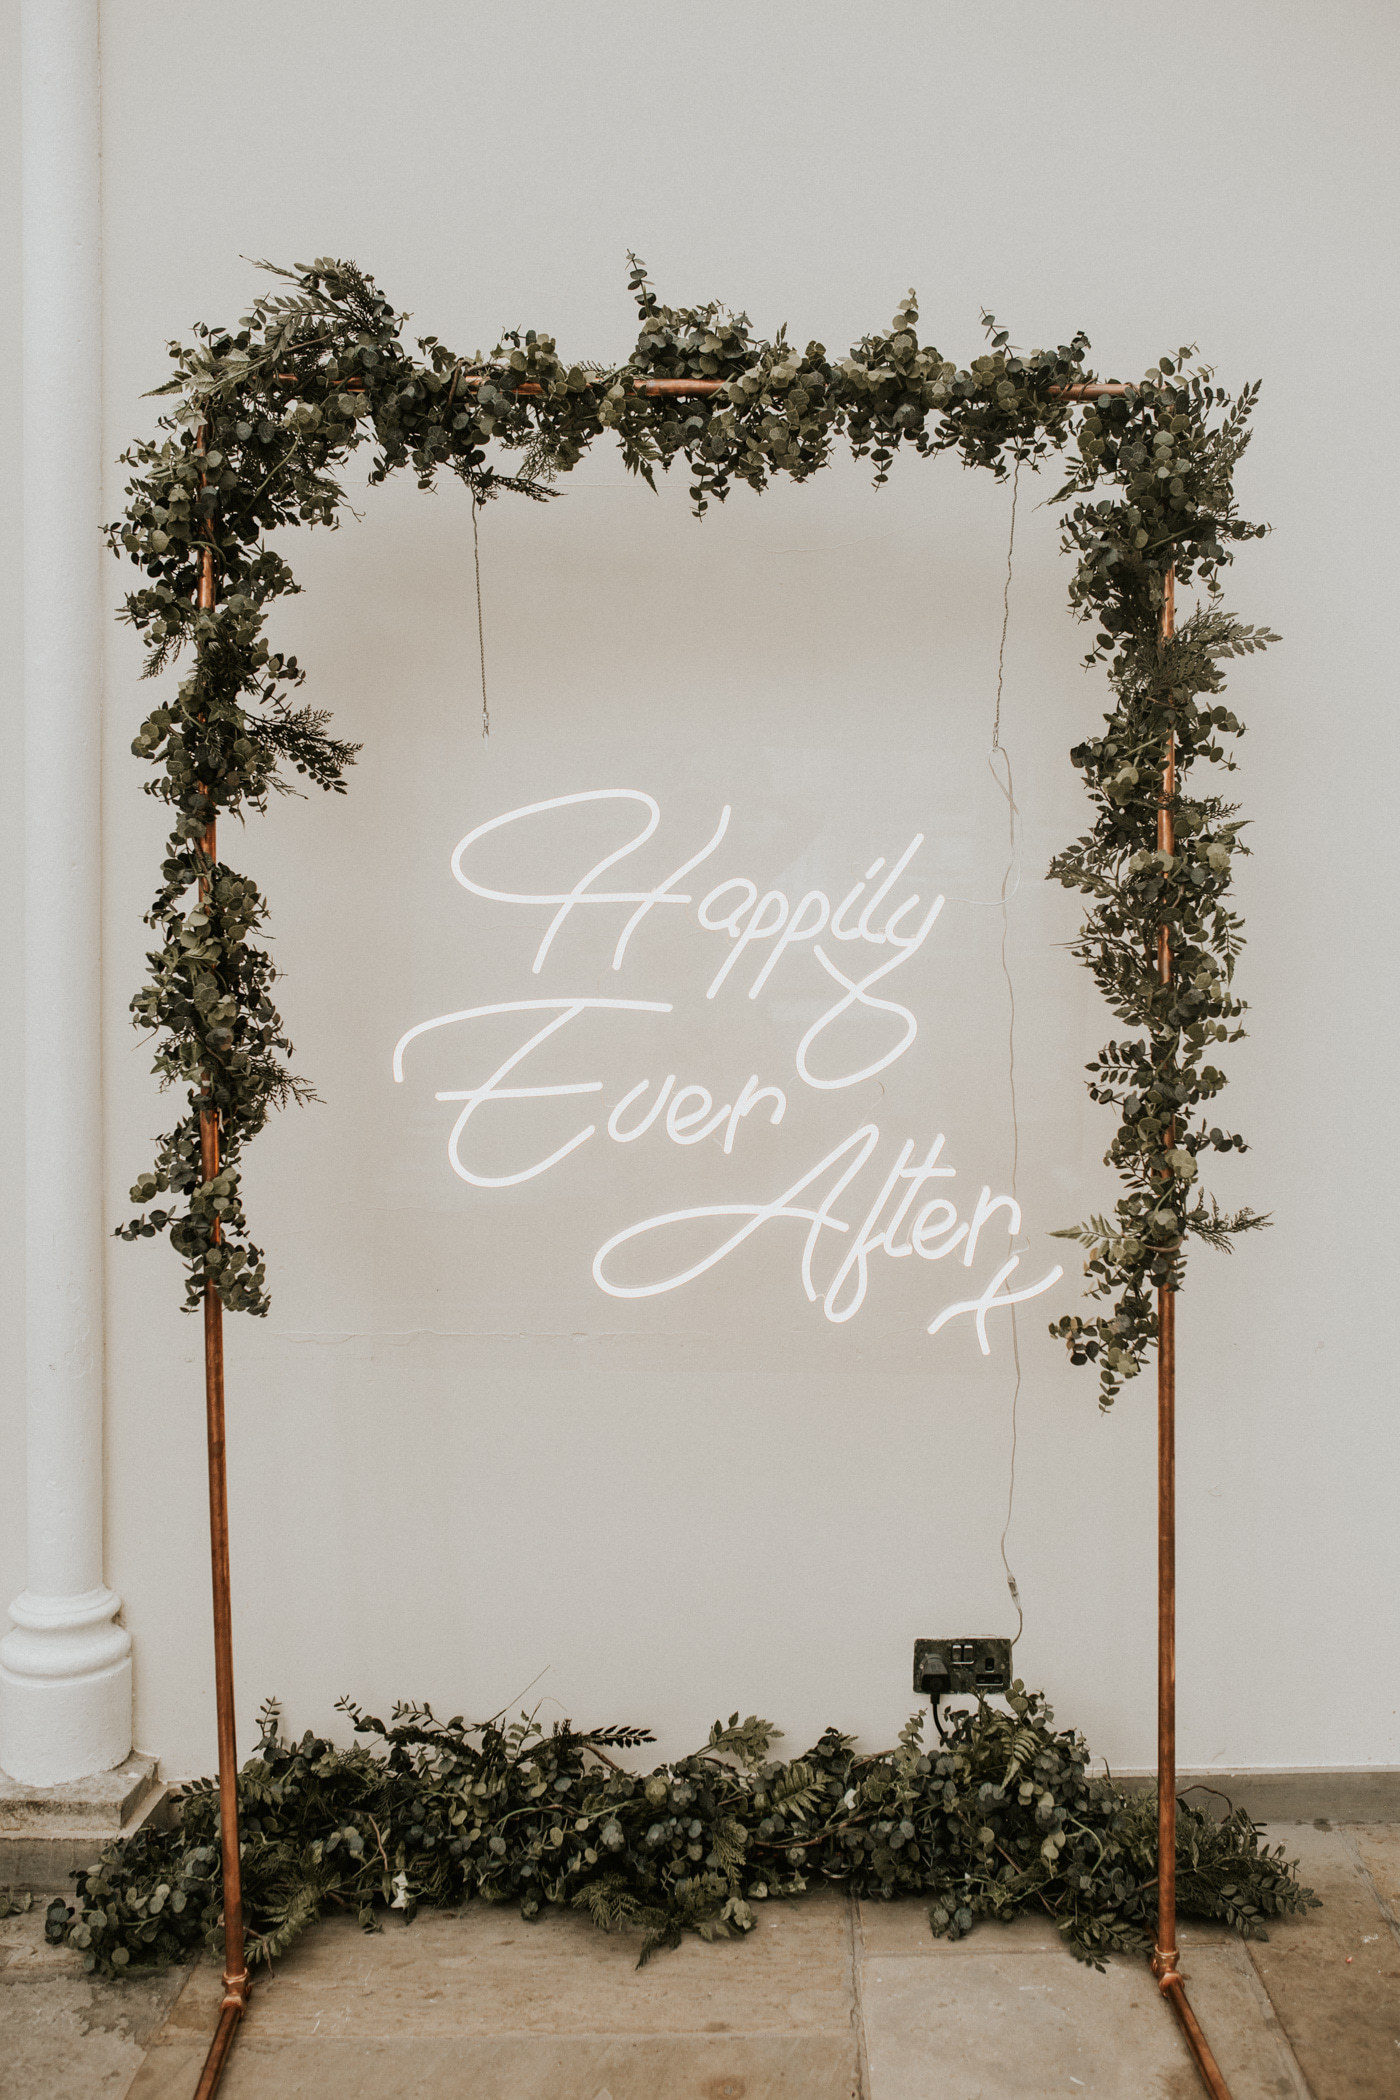 Neon sign at Buxted Park Hotel wedding